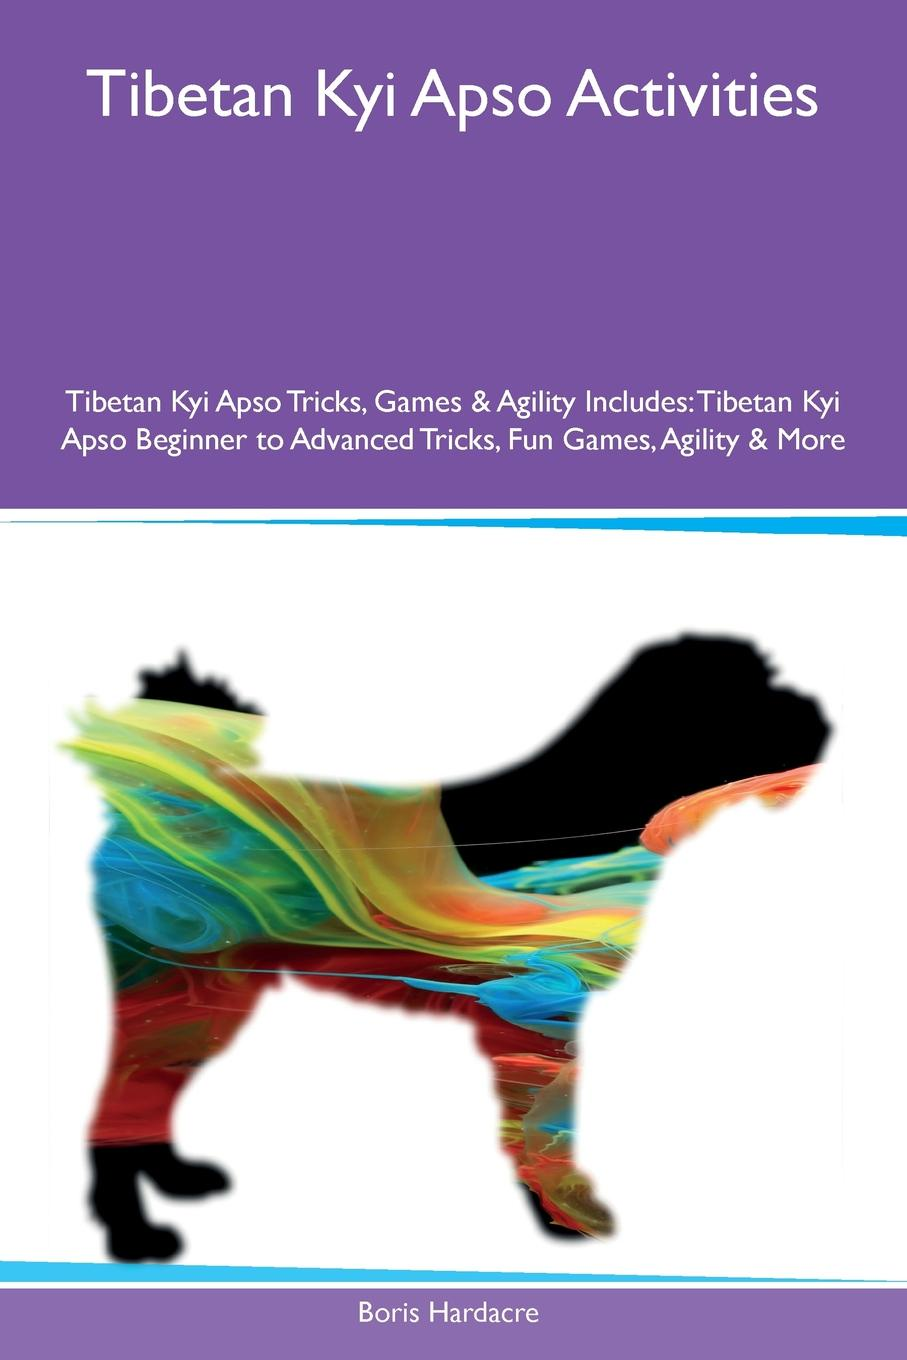 Boris Hardacre Tibetan Kyi Apso Activities Tricks, Games & Agility Includes. Beginner to Advanced Fun Games, More